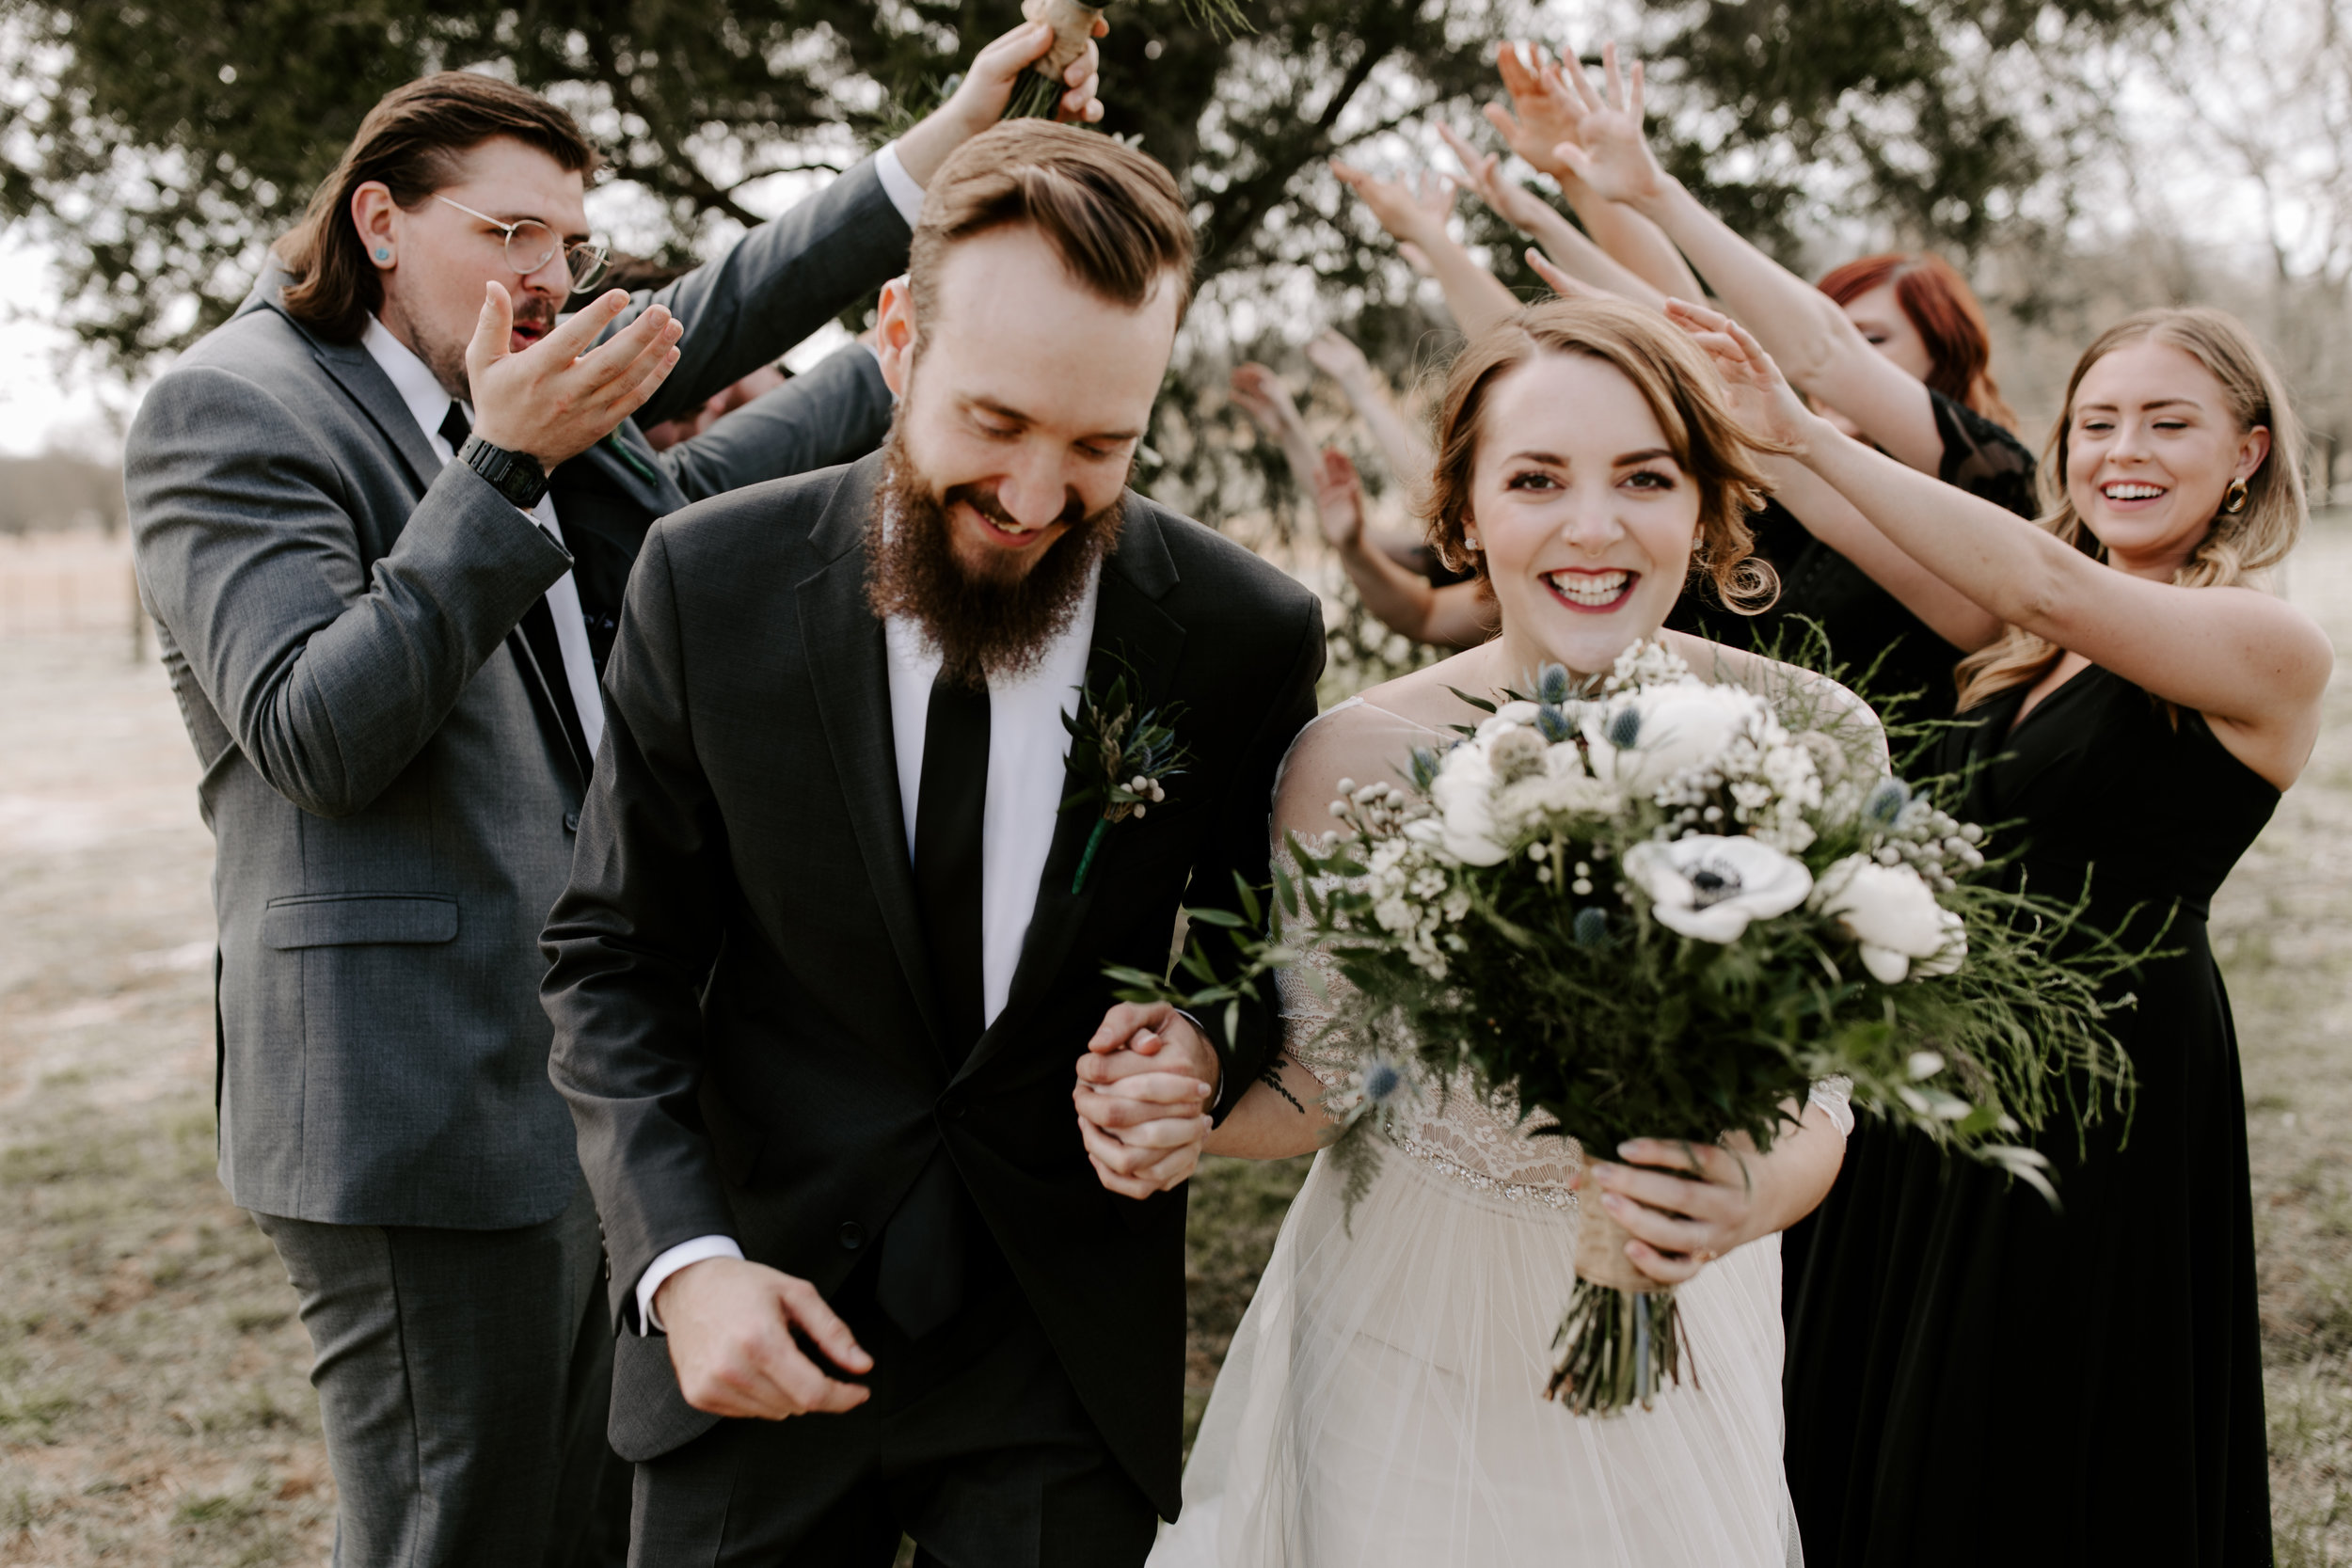 Moody and Edgy Wedding Party Portraits